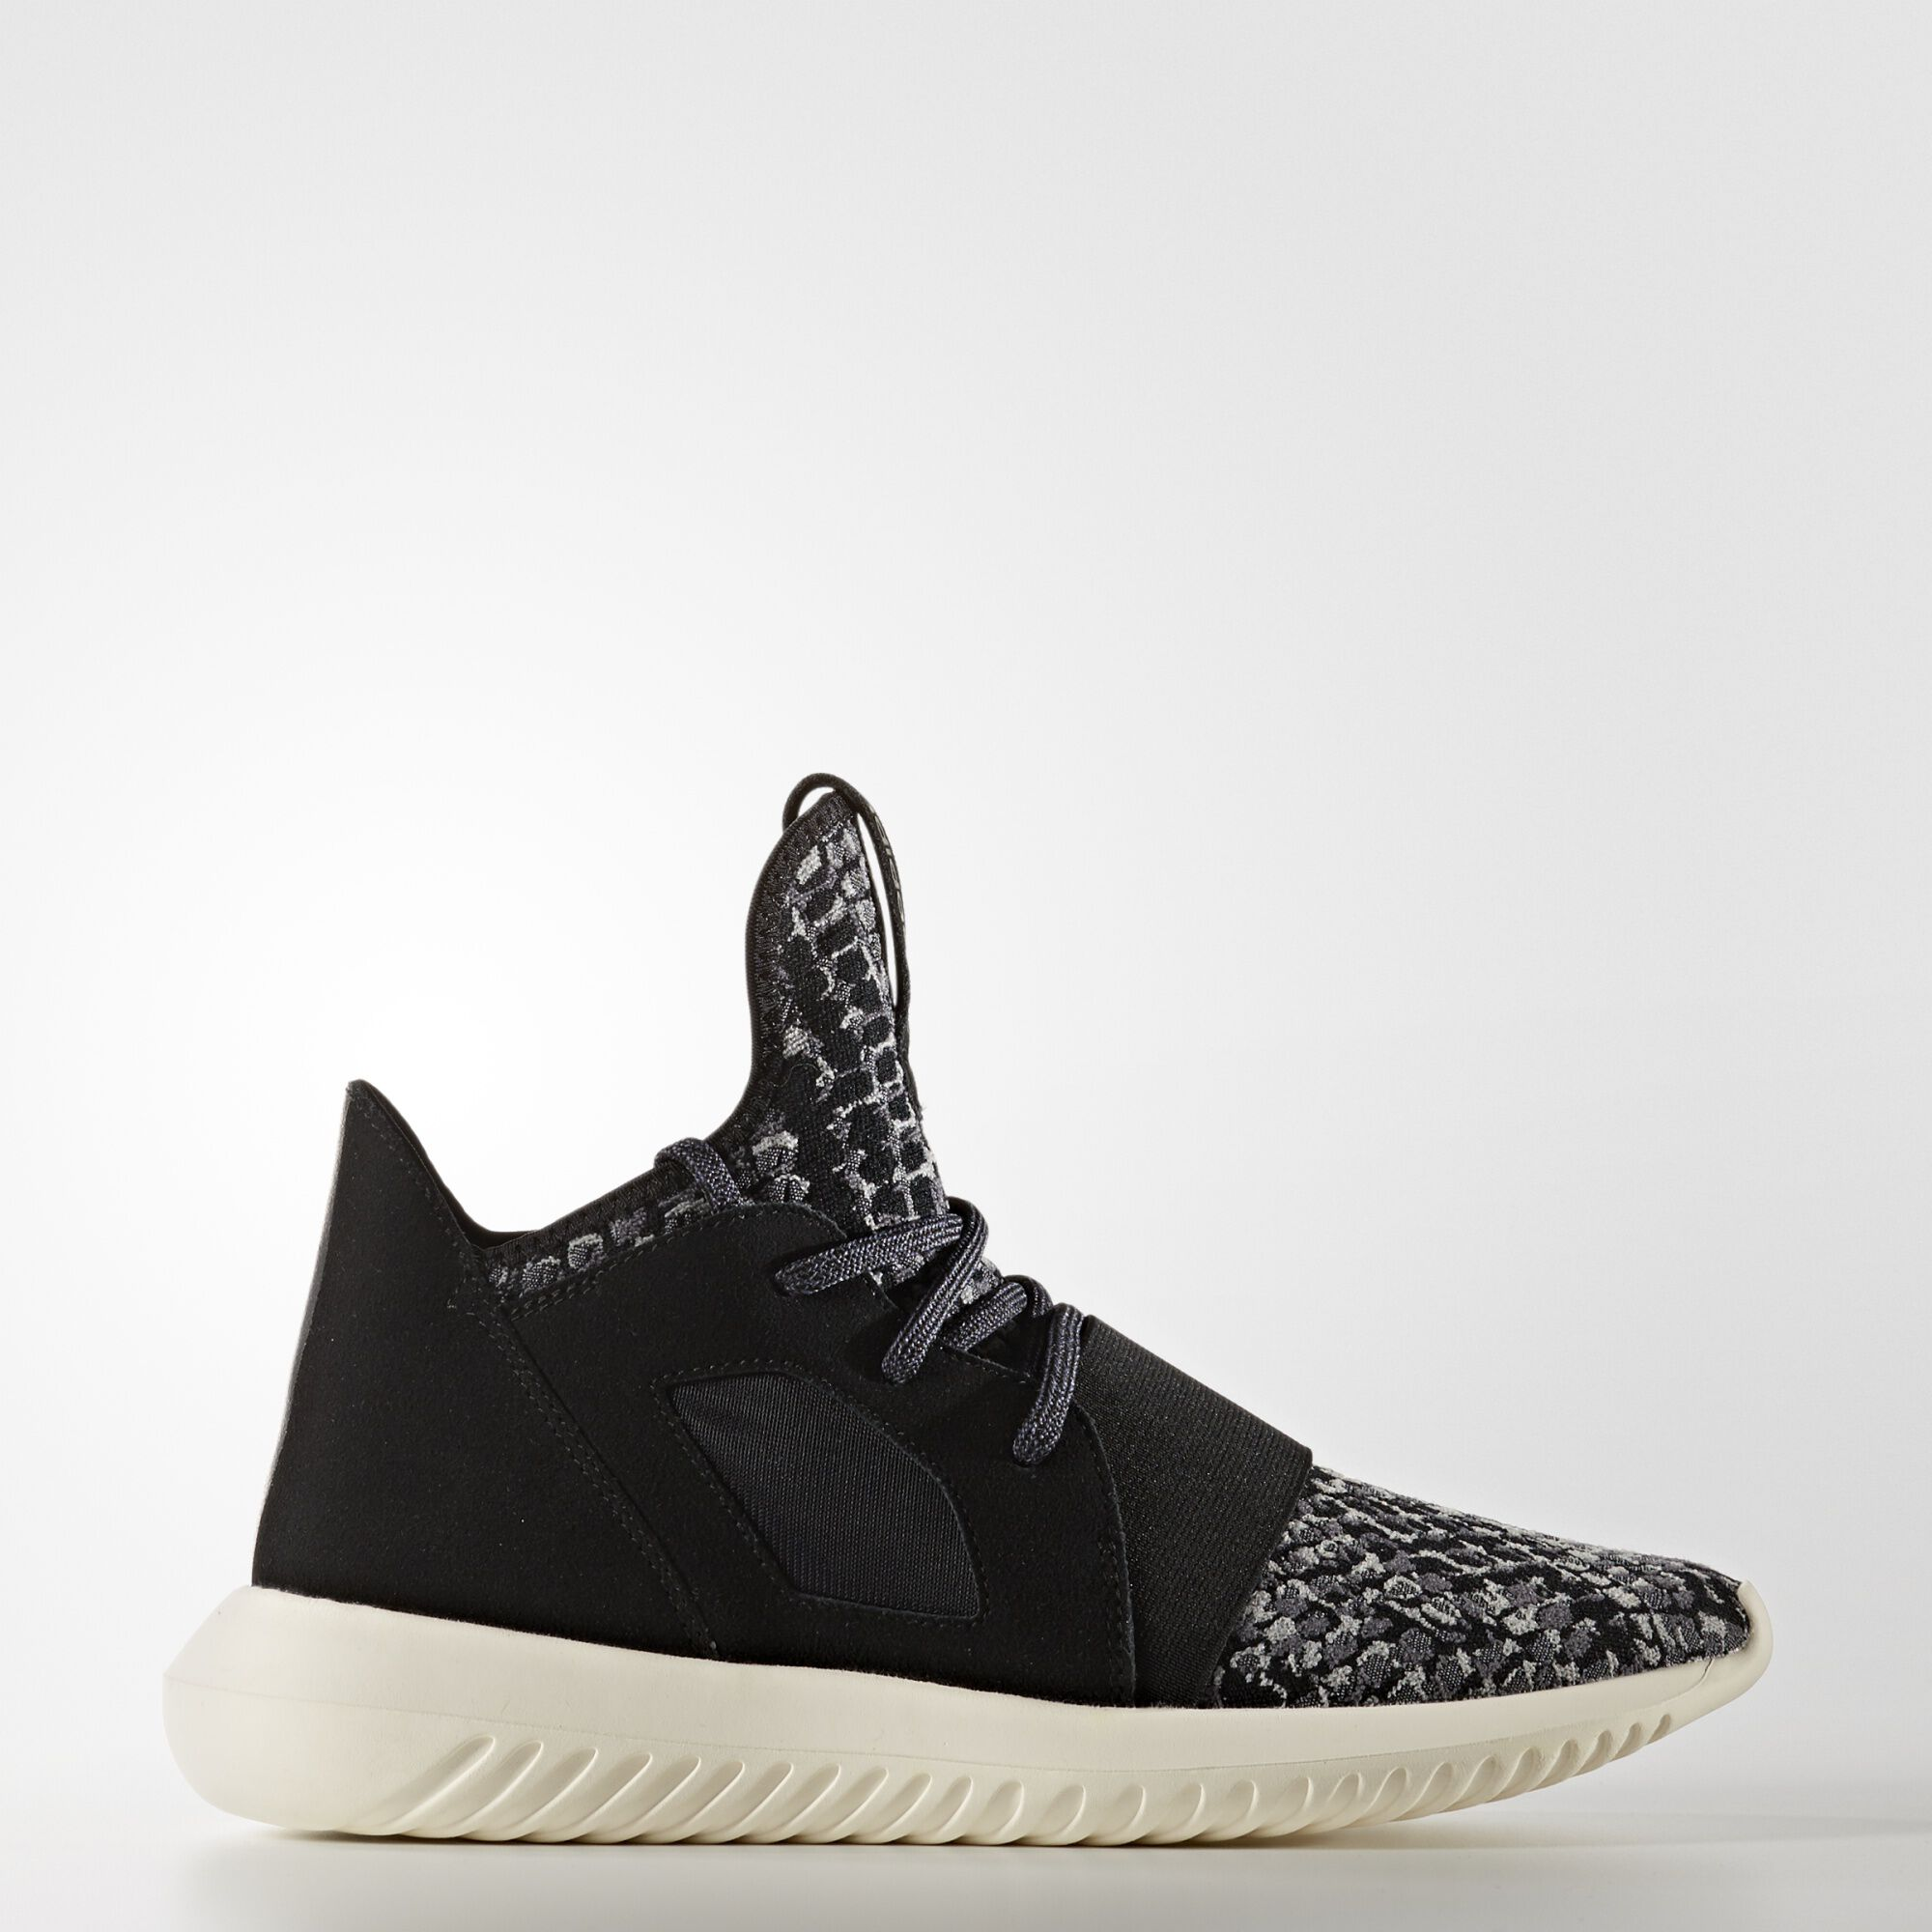 Adidas Originals women 's Tubular Defiant Sportscene